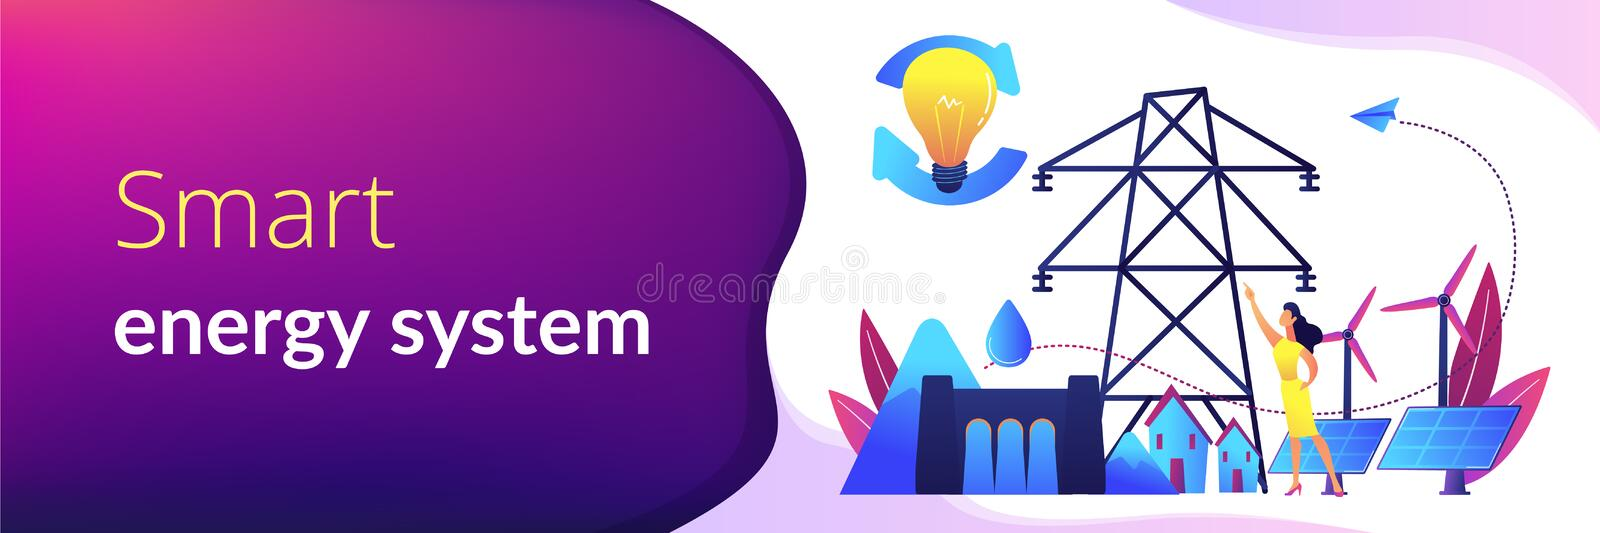 Sustainable energy concept banner header. vector illustration